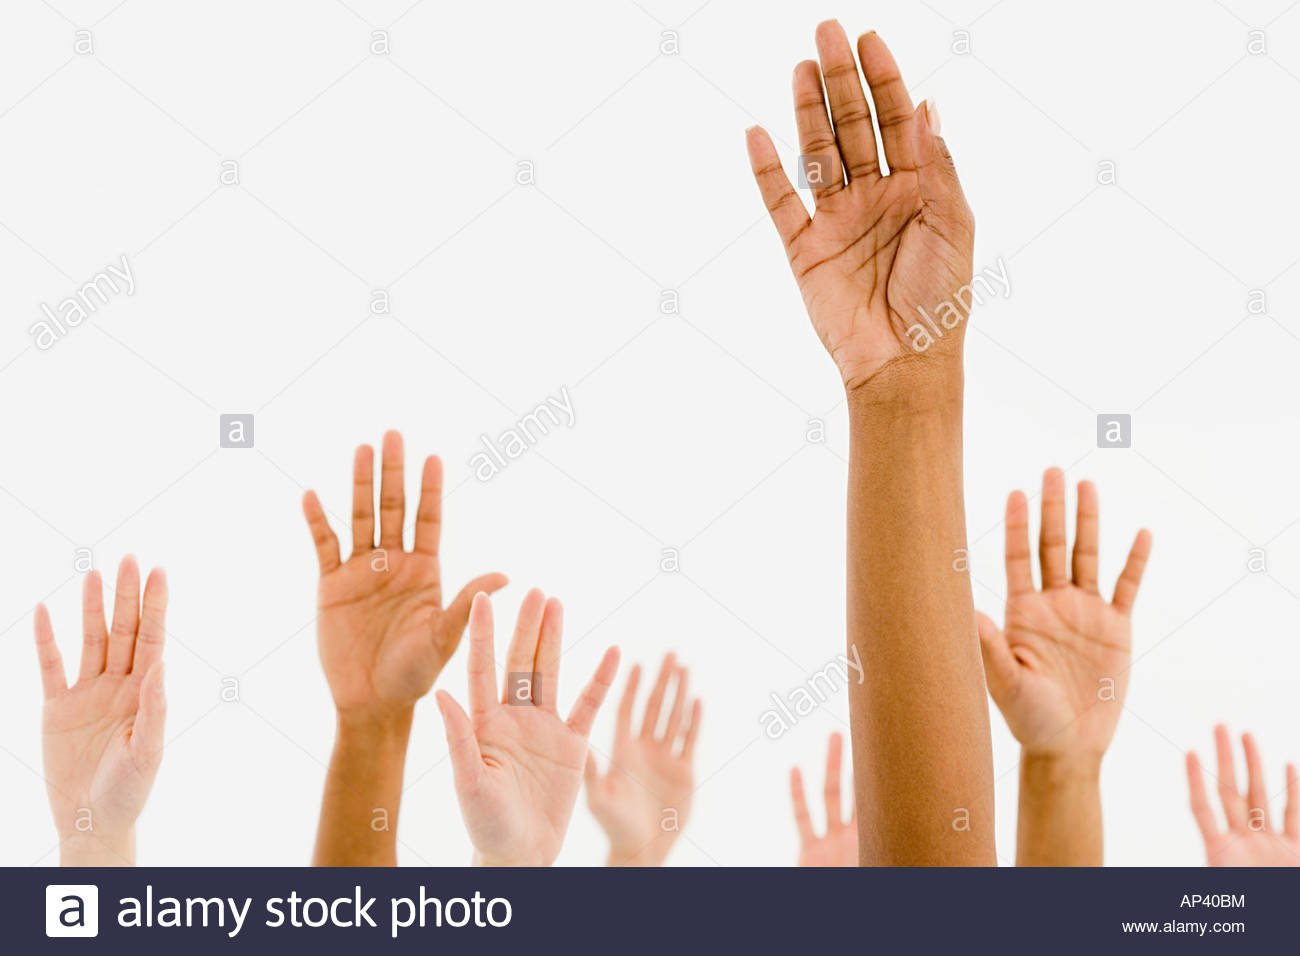 Human hands - Stock Image